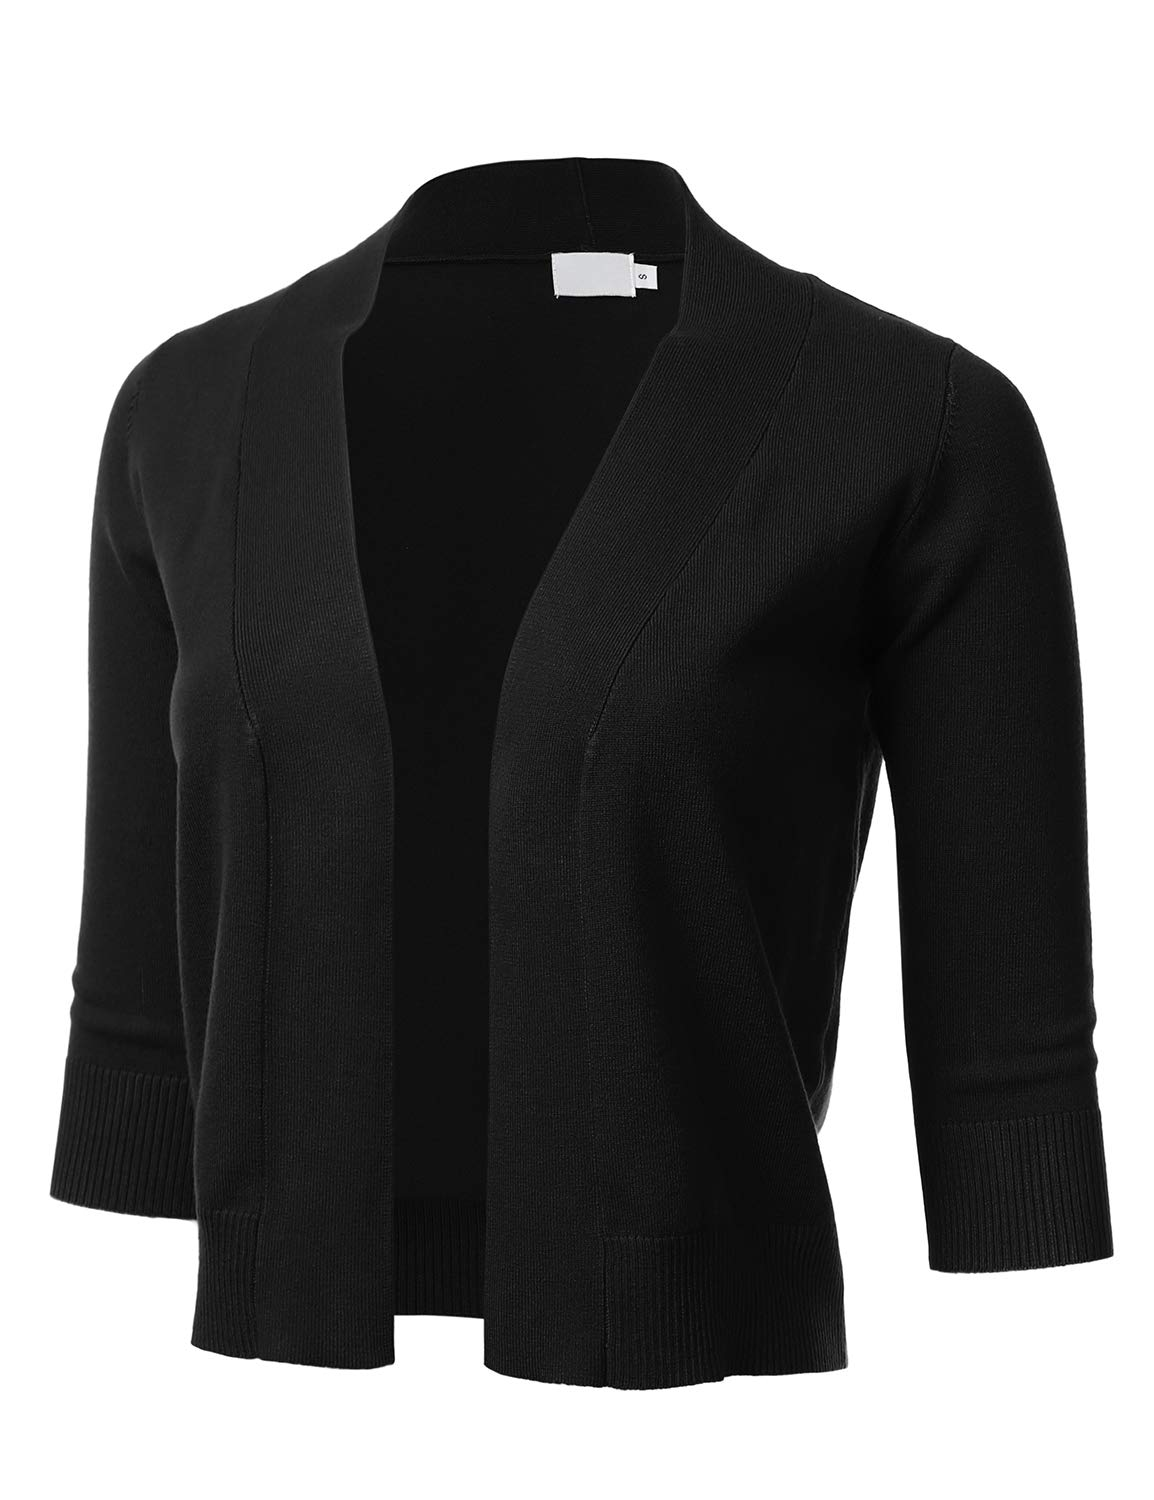 FLORIA Womens Classic 3/4 Sleeve Open Front Cropped Cardigan Black M